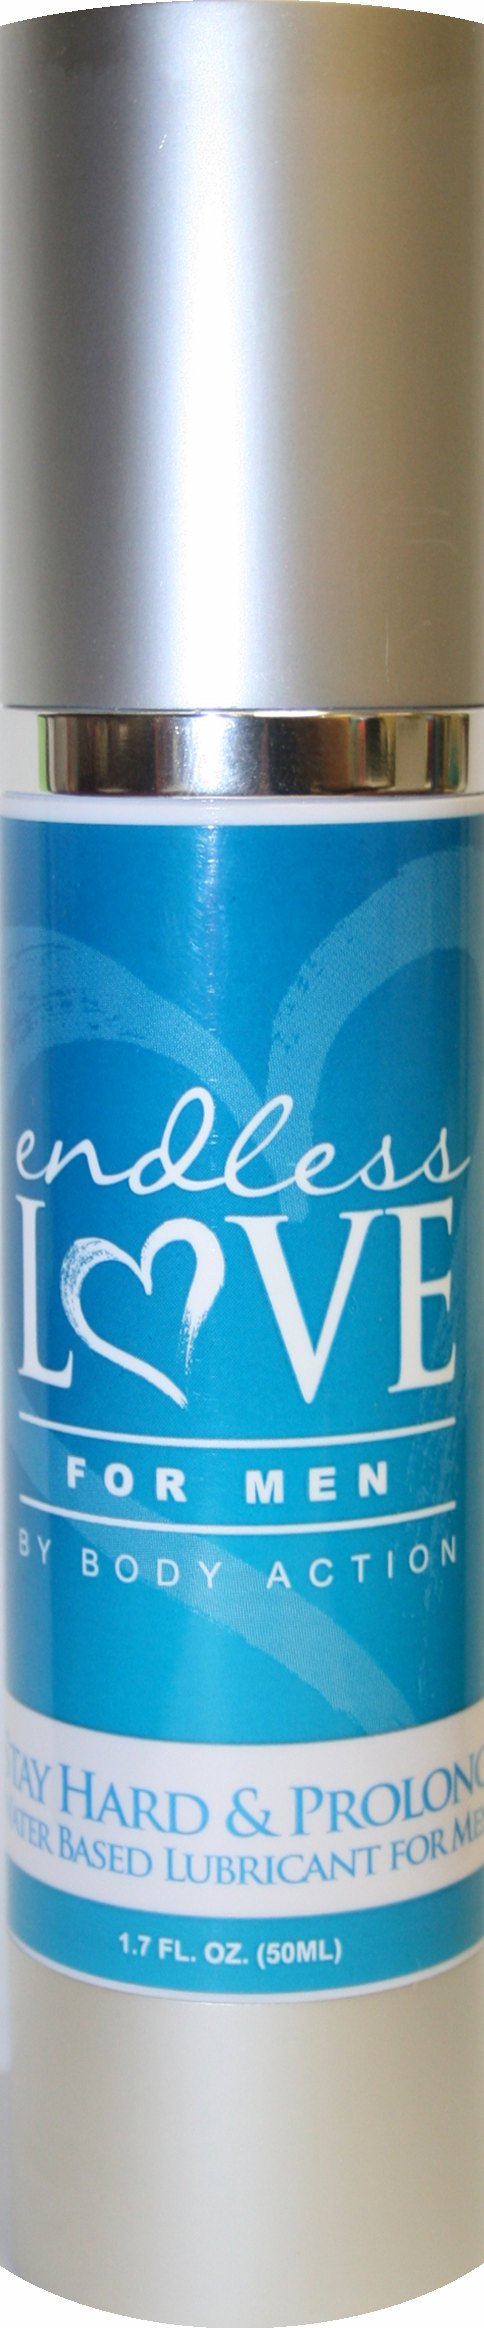 ENDLESS LOVE FOR MEN STAYHARD & PROLONG LUBRICANT 1.7 OZ. -BAELFMSP17